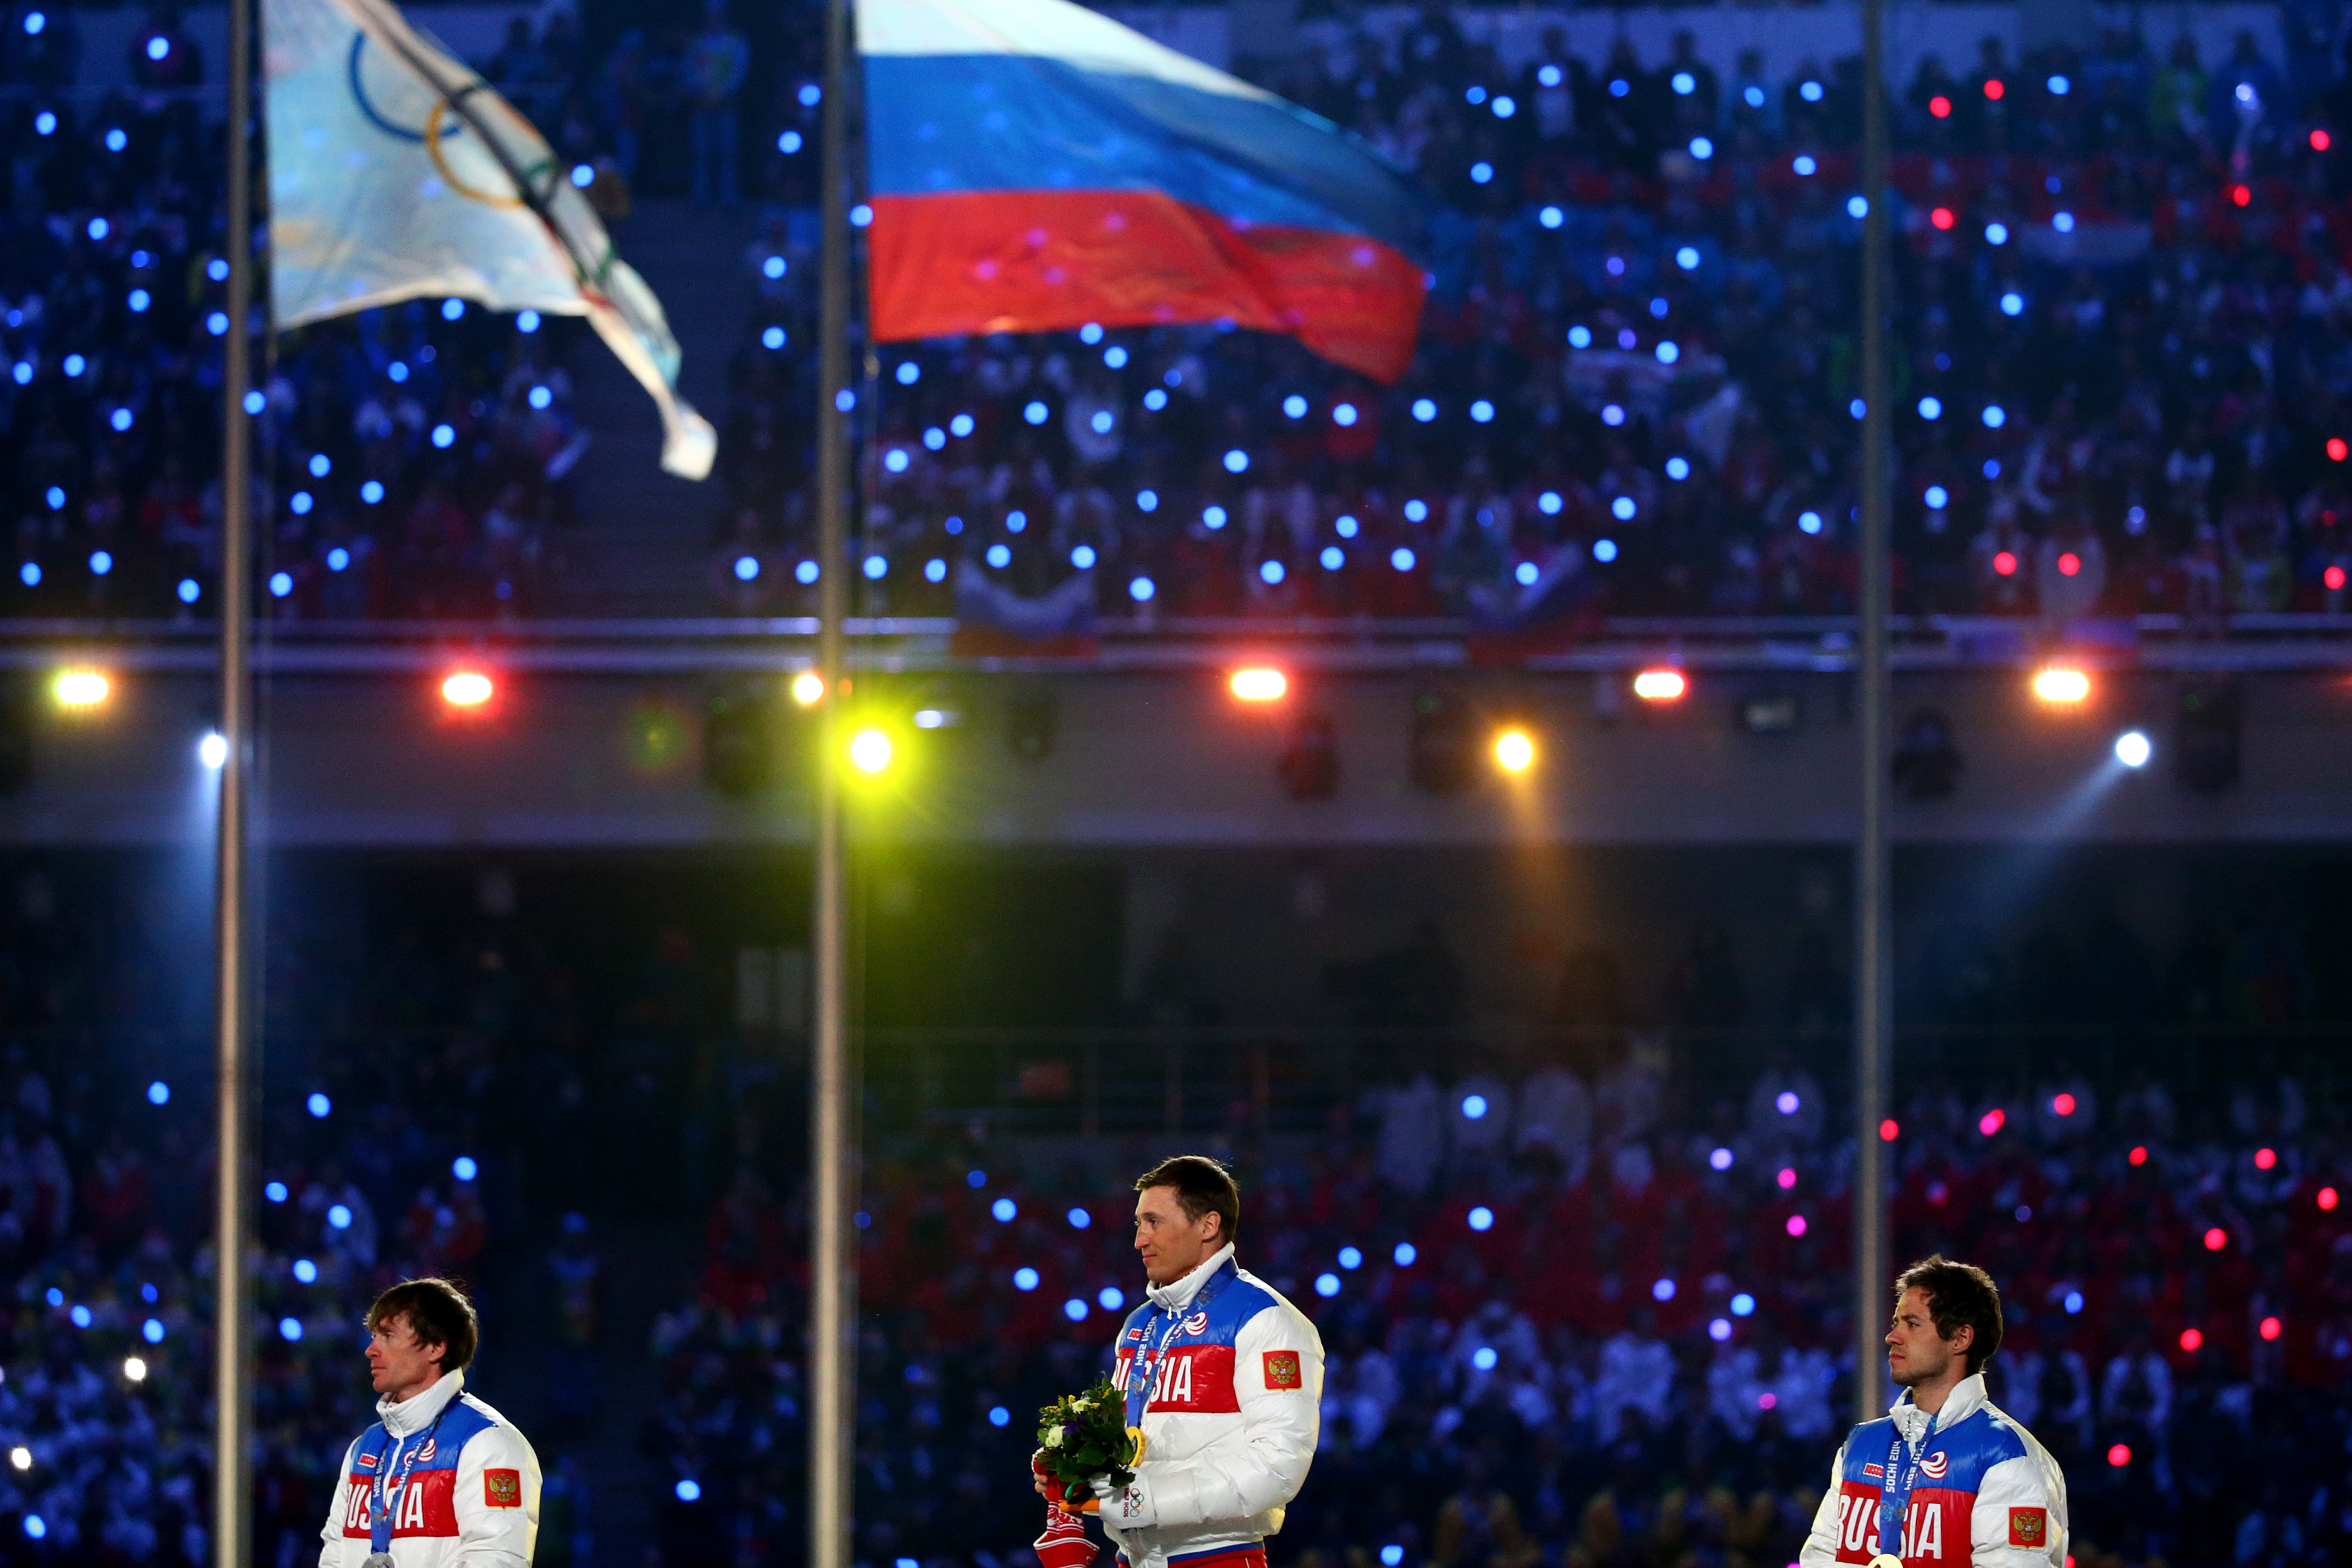 Silver medalist Maxim Vylegzhanin of Russia, gold medalist Alexander Legkov of Russia and bronze medalist Ilia Chernousov of Russia celebrate in the medal ceremony for the Men's 50 km Mass Start Free during the 2014 Sochi Winter Olympics Closing Ceremony at Fisht Olympic Stadium on February 23, 2014 in Sochi, Russia. (Ryan Pierse—Getty Images)